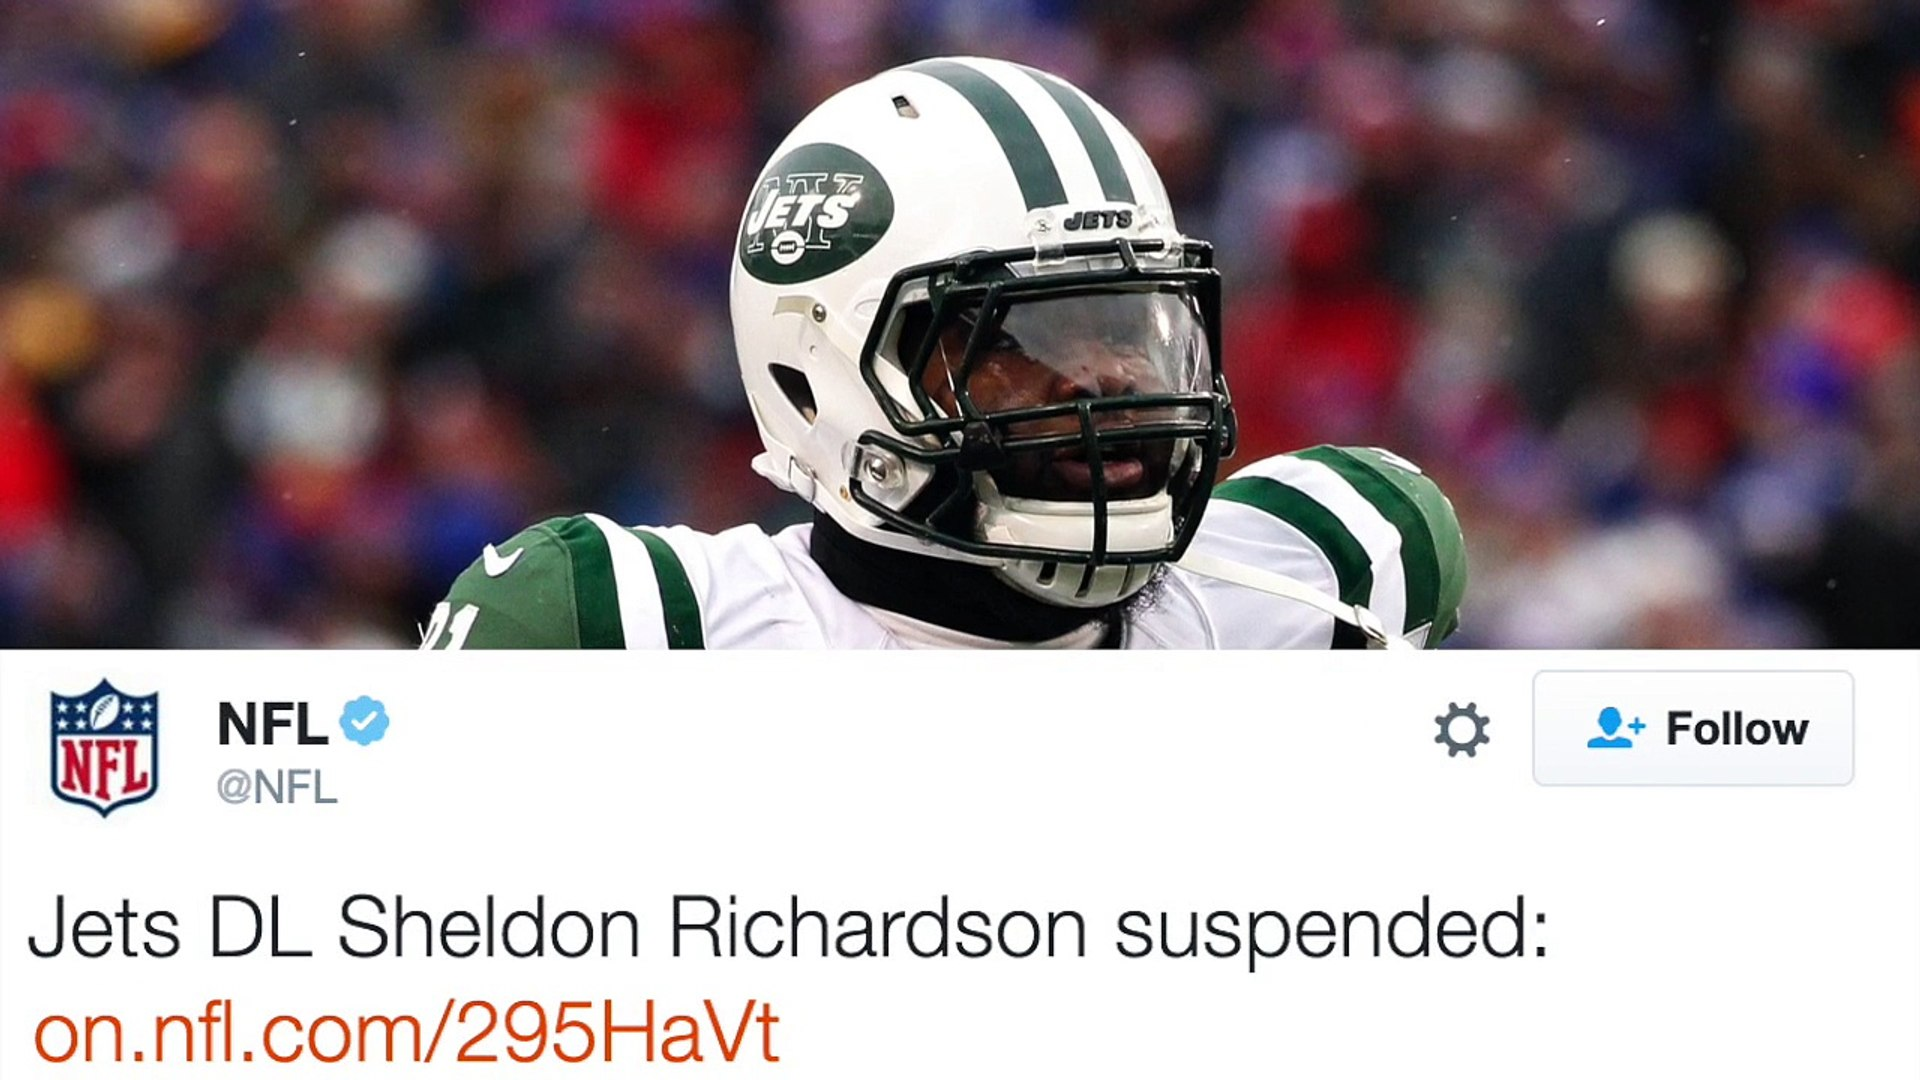 Rolando McClain, Johnny Manziel Among Players Suspended By NFL